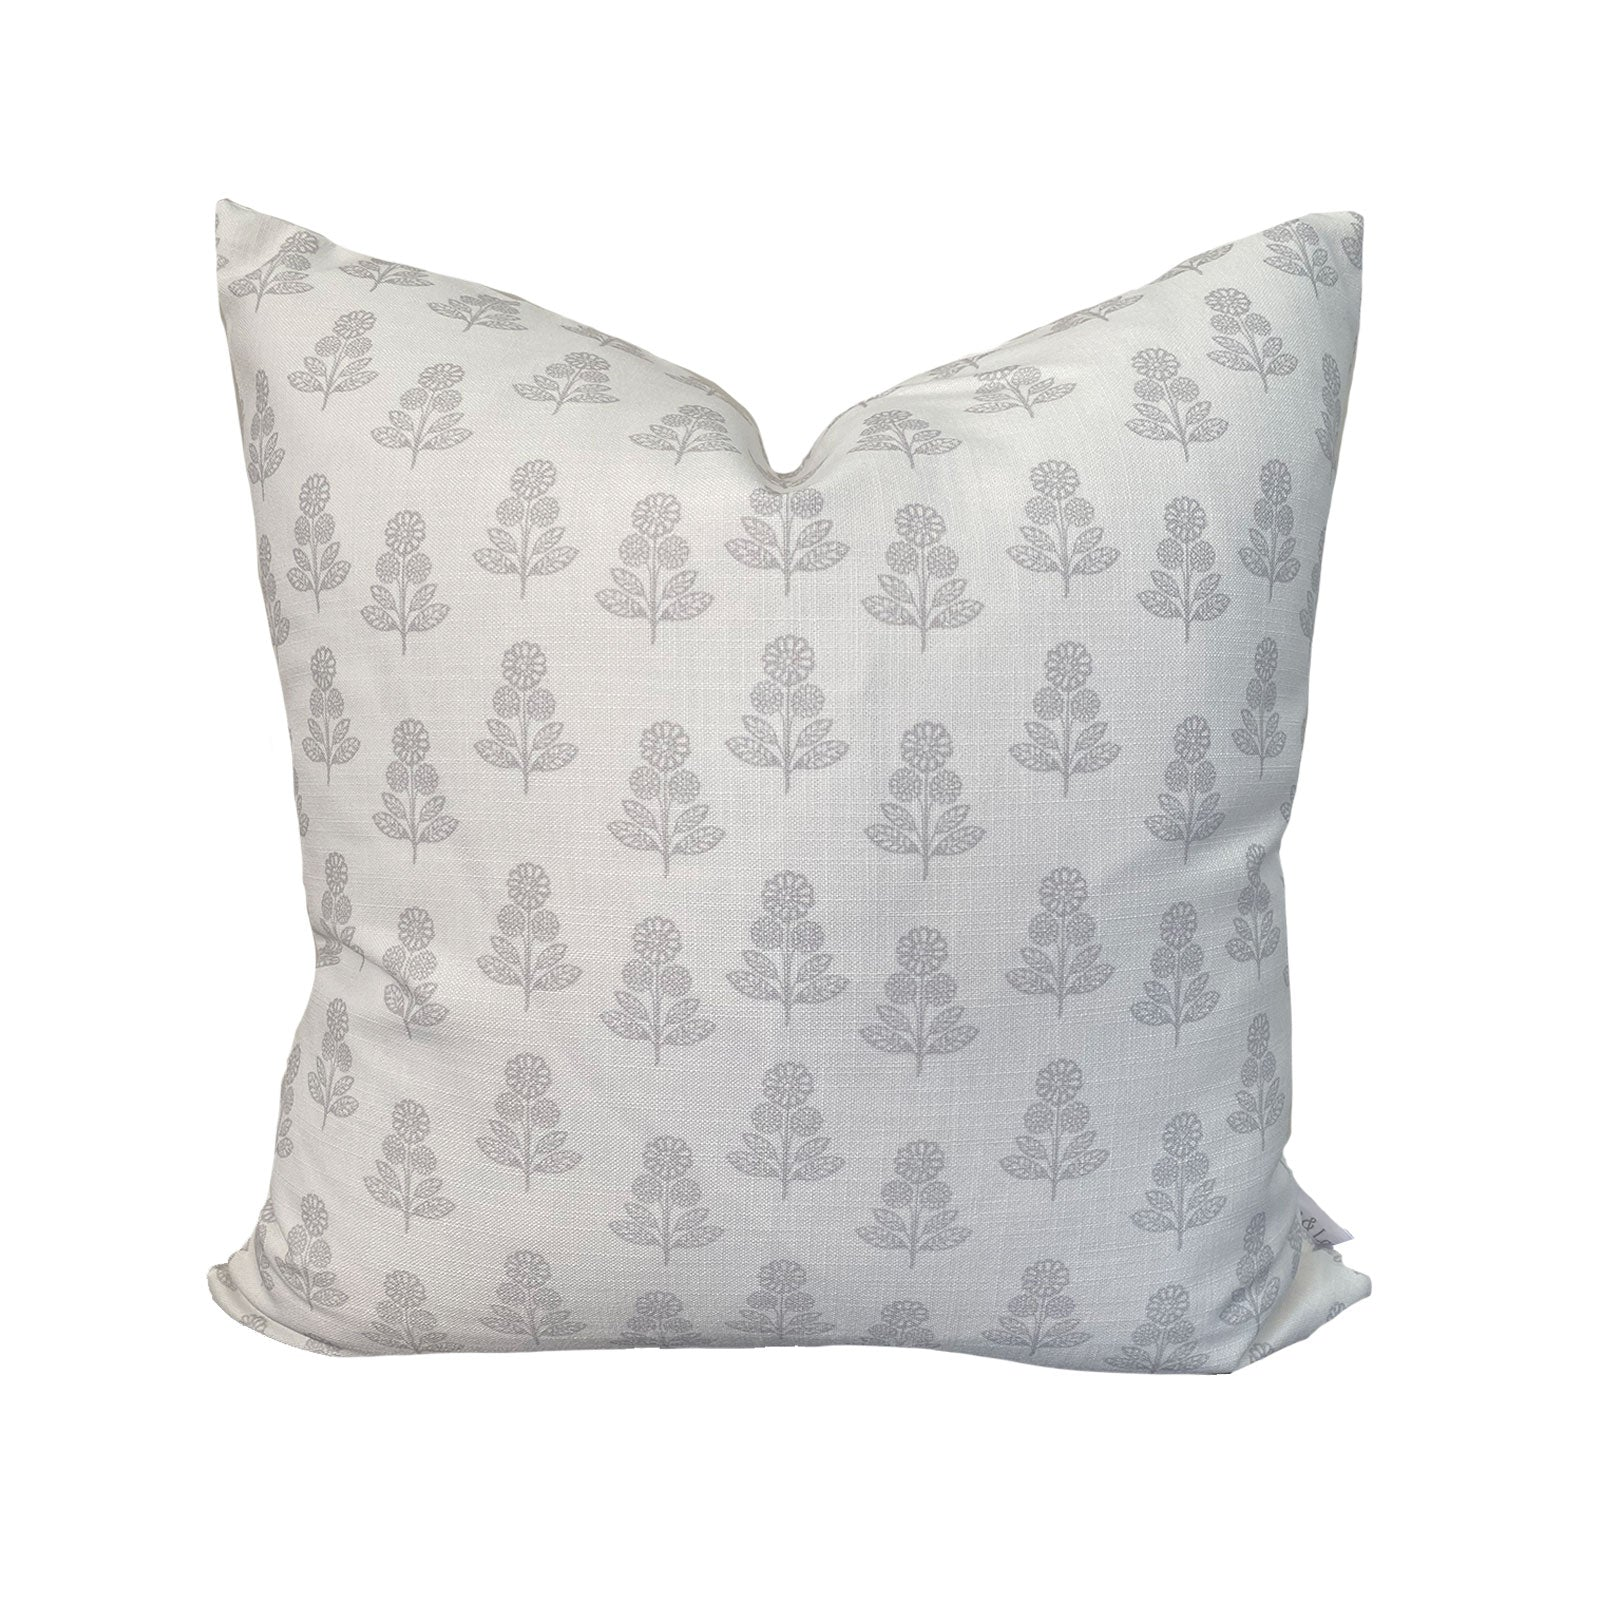 Stella Floral Pillow in Stone Grey